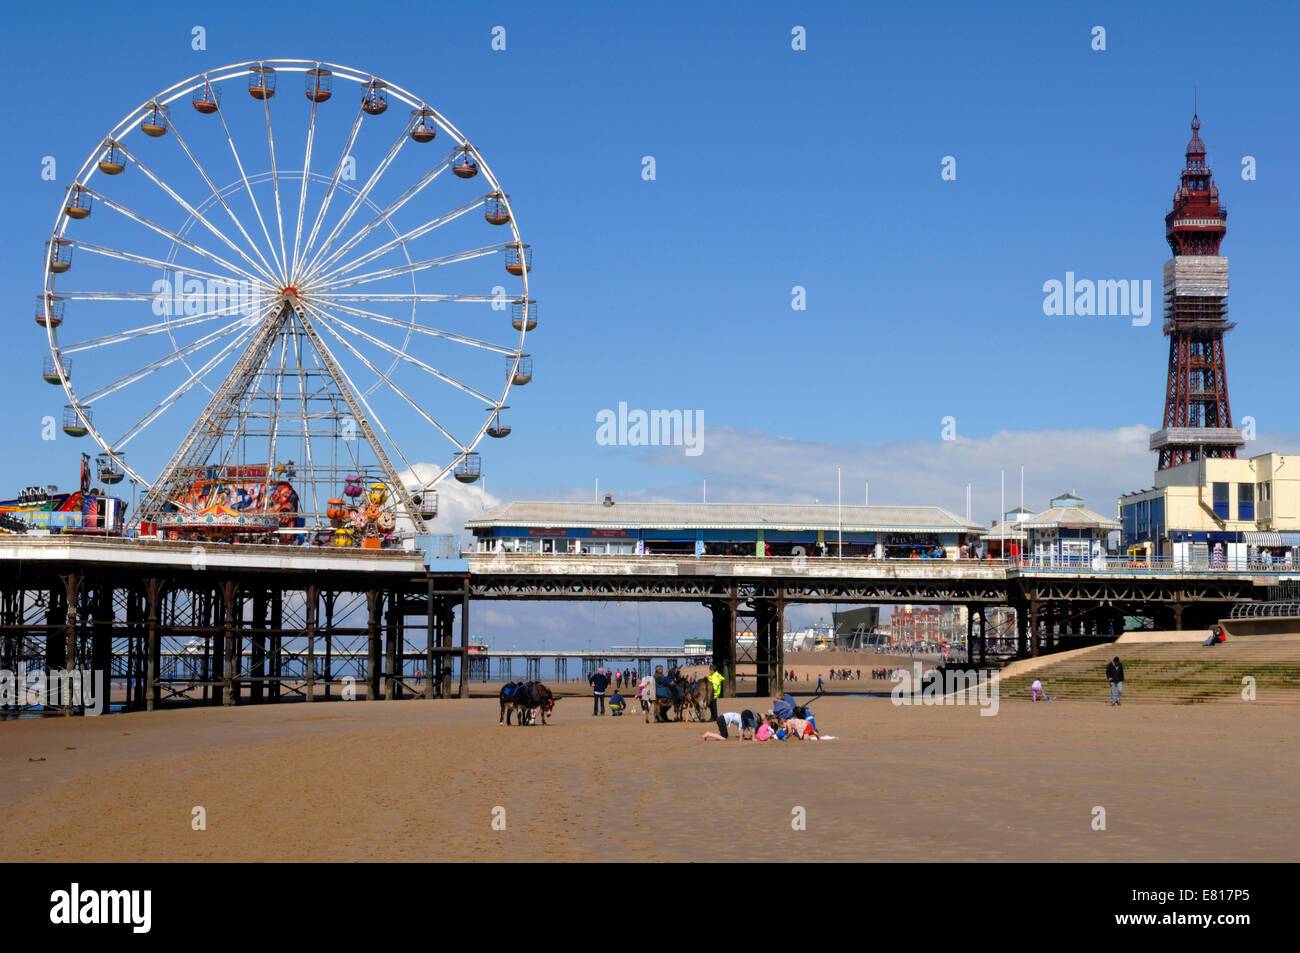 The Central Pier and tower in Blackpool - Stock Image